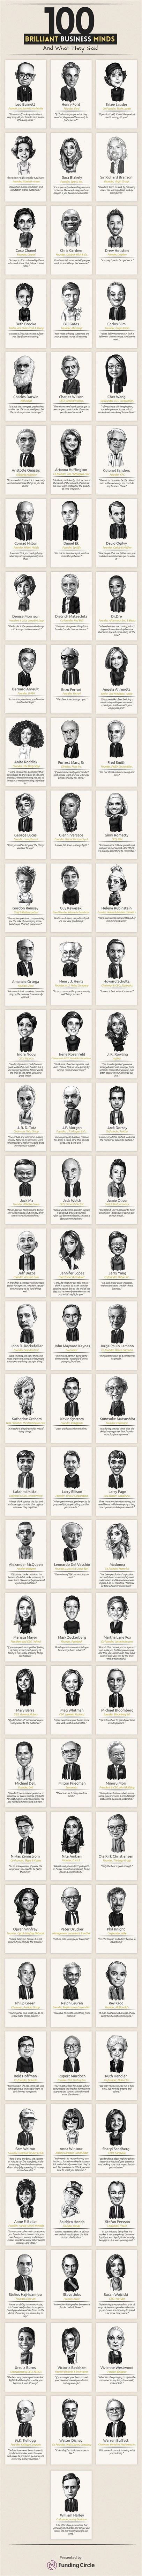 Inspirational Quotes From 100 Famous Business Leaders (Infographic) #business #solutions http://money.nef2.com/inspirational-quotes-from-100-famous-business-leaders-infographic-business-solutions/  #business quotes # Inspirational Quotes From 100 Famous Business Leaders (Infographic) On the long, hard road to starting and growing a business, it can be easy to want to give up. You need support along the way, not just from friends and loved ones, but from people who ve been down the same road…